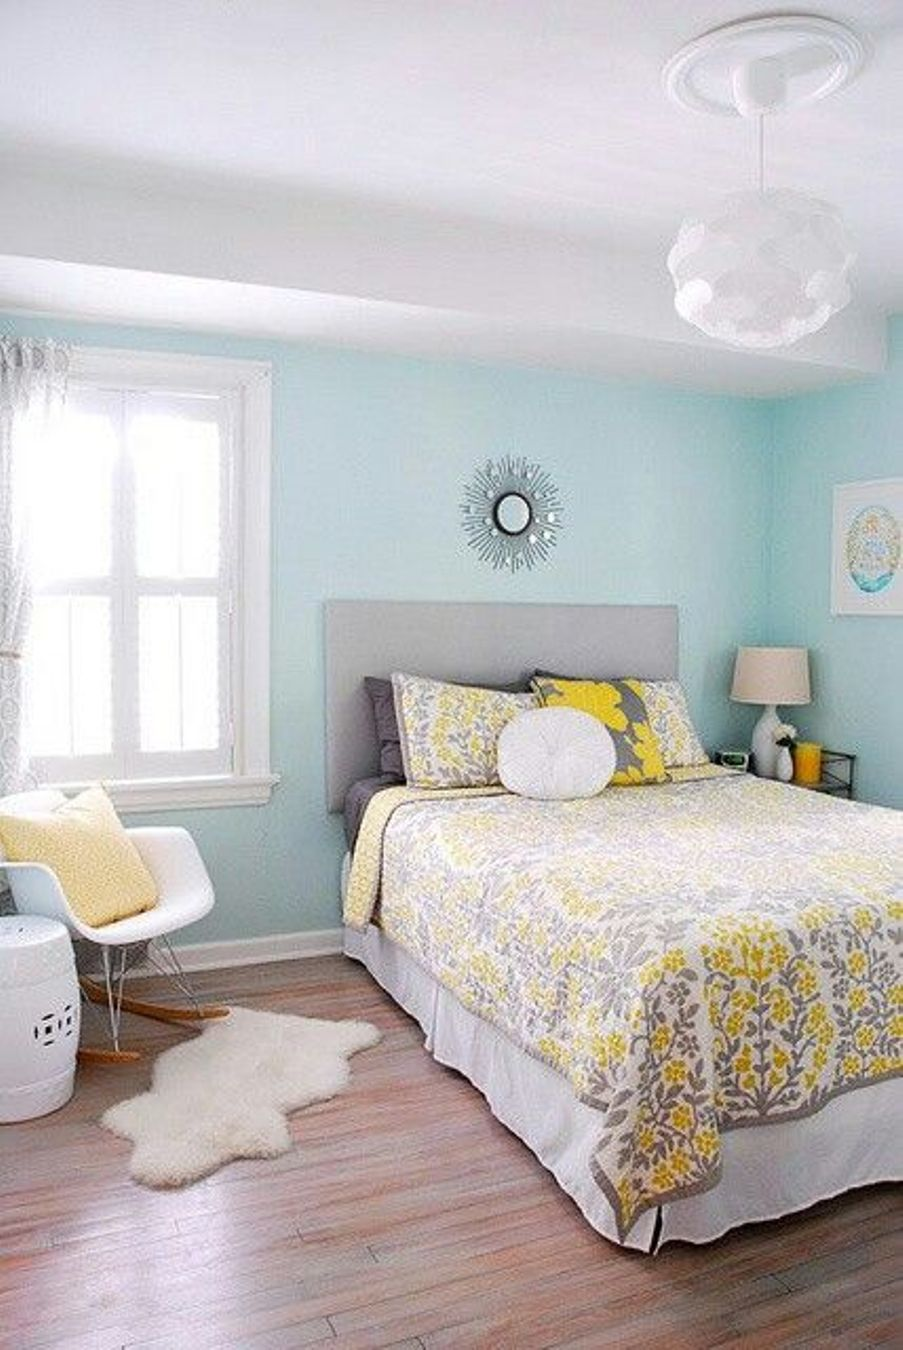 Best Paint Colors for Small Room – Some Tips – HomesFeed